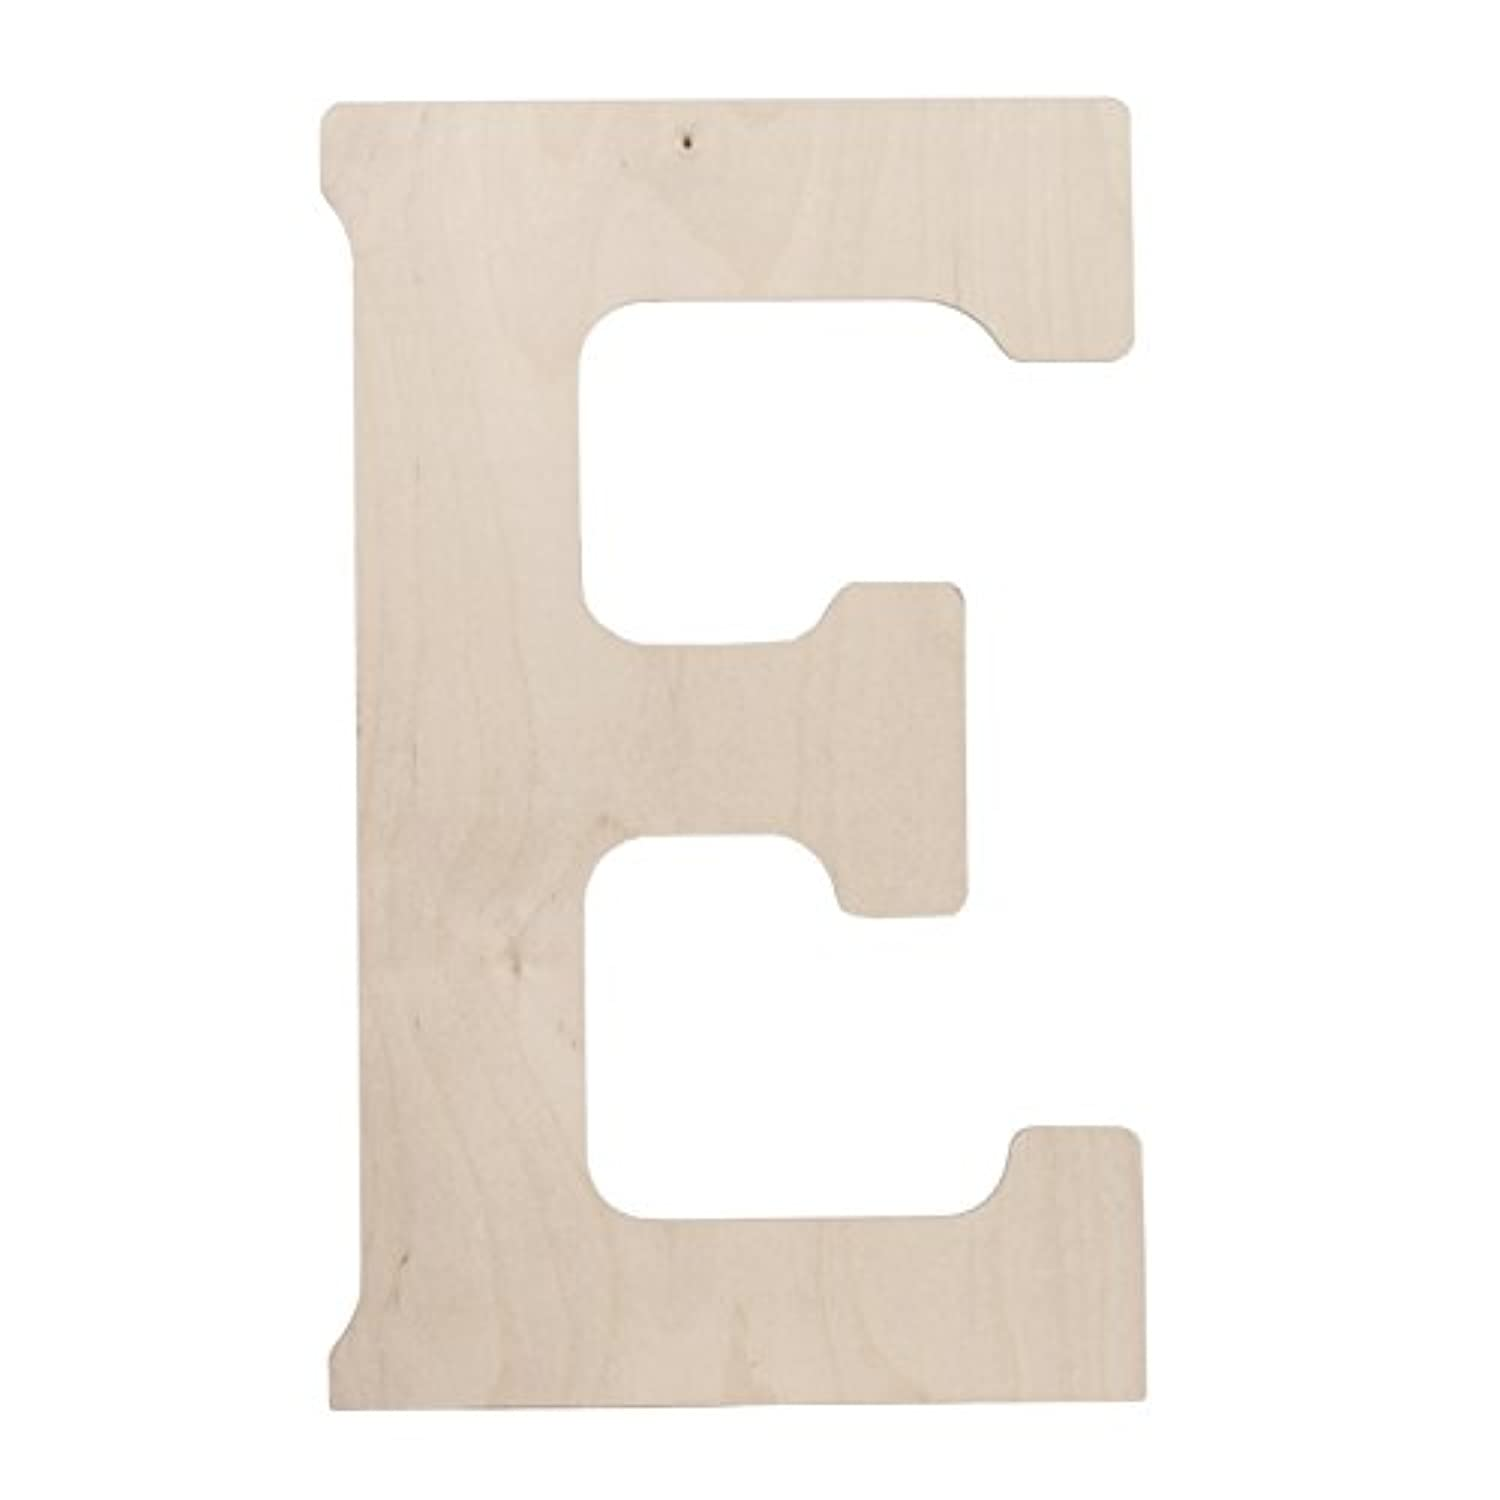 Walnut Hollow Wood Letter, 18 by 0.5-Inch, Monogrammed Letter E